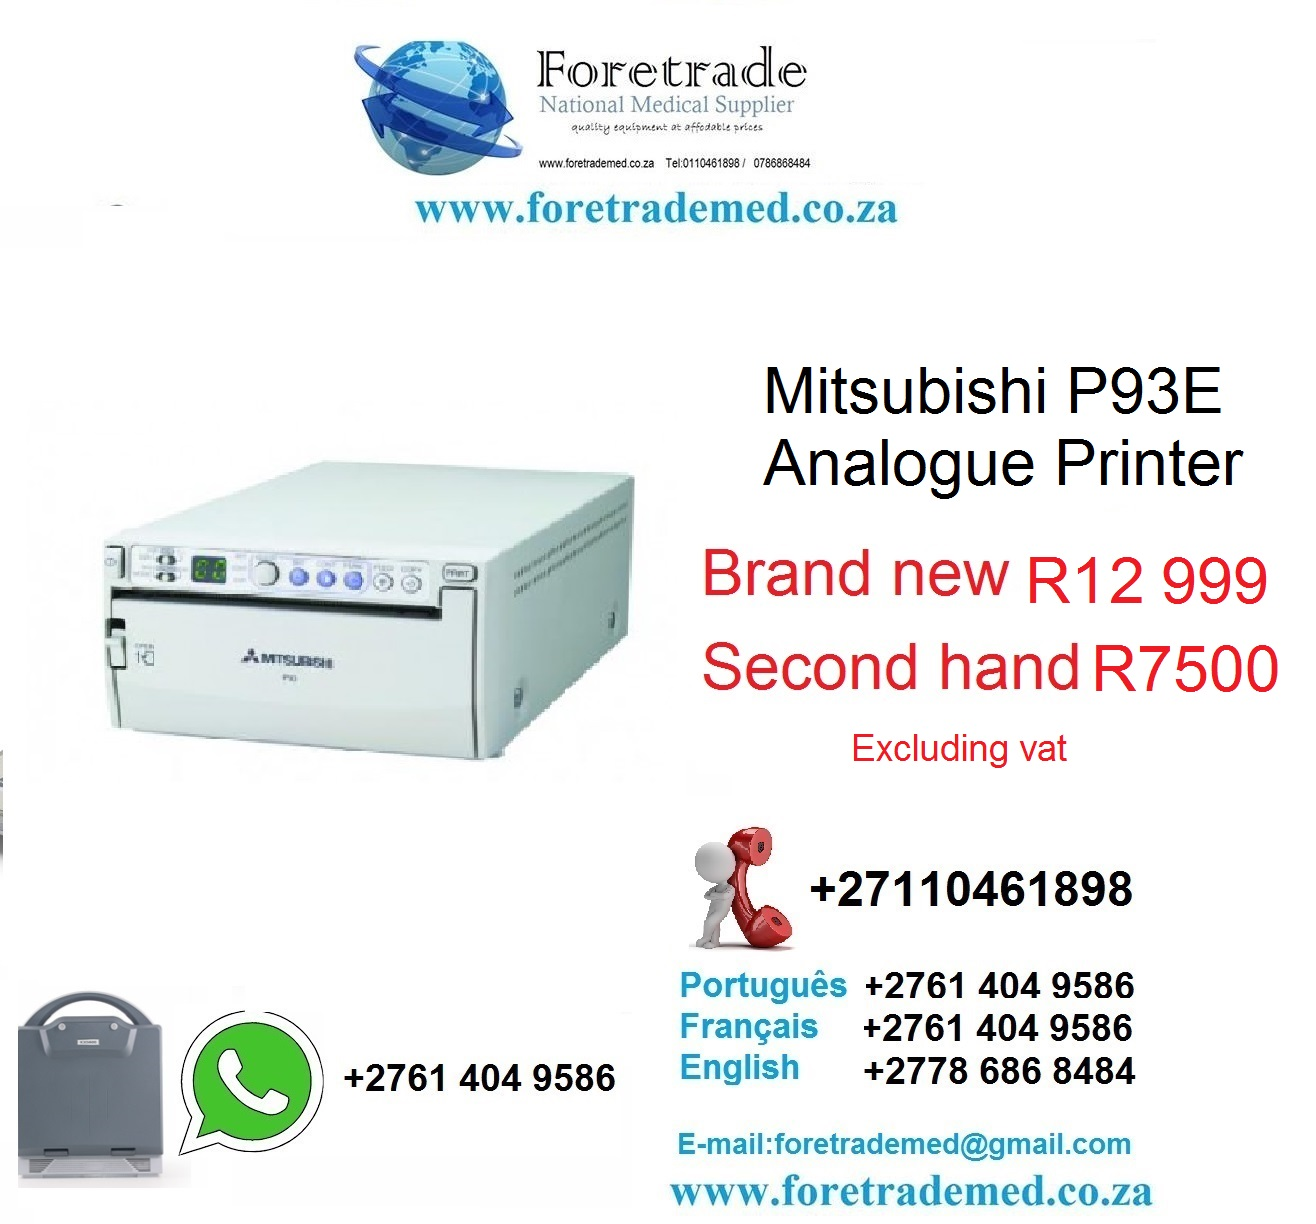 Mitsubishi ultrasound printer for only R12999 CONTACT PATRICK ON 0110461898